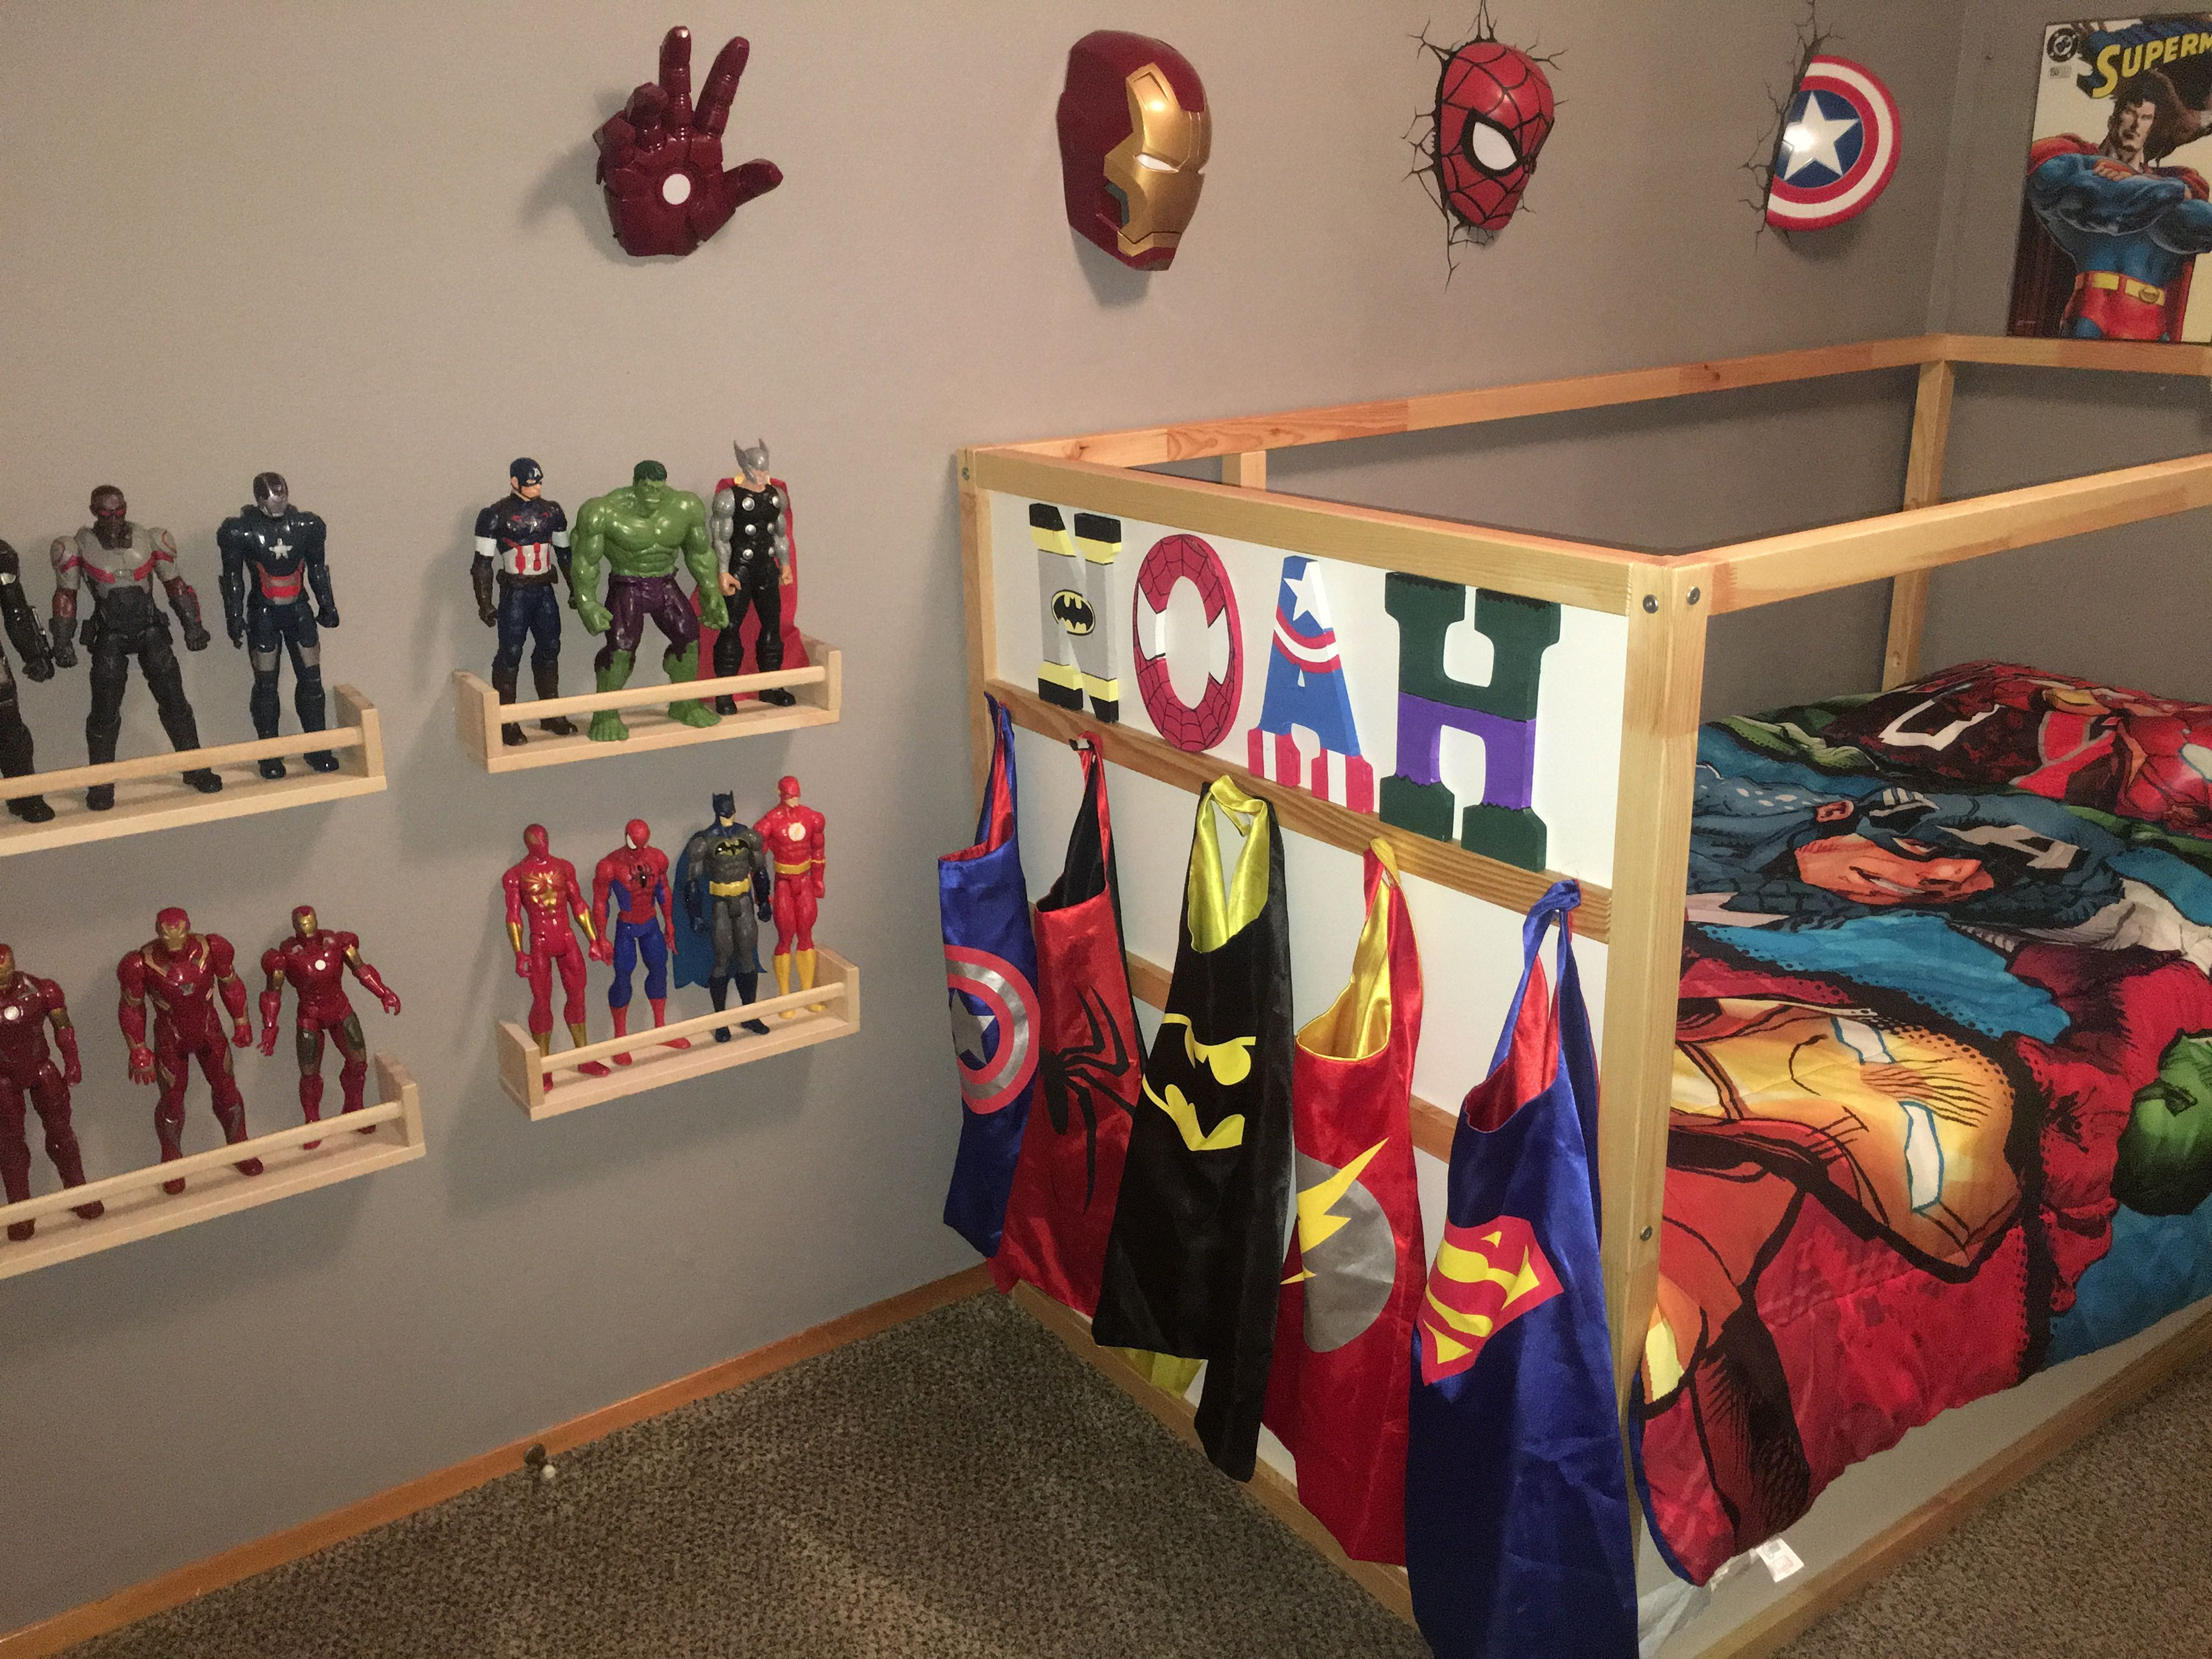 20+ Marvelous Boys Bedroom Ideas That Will Inspire You  Idée